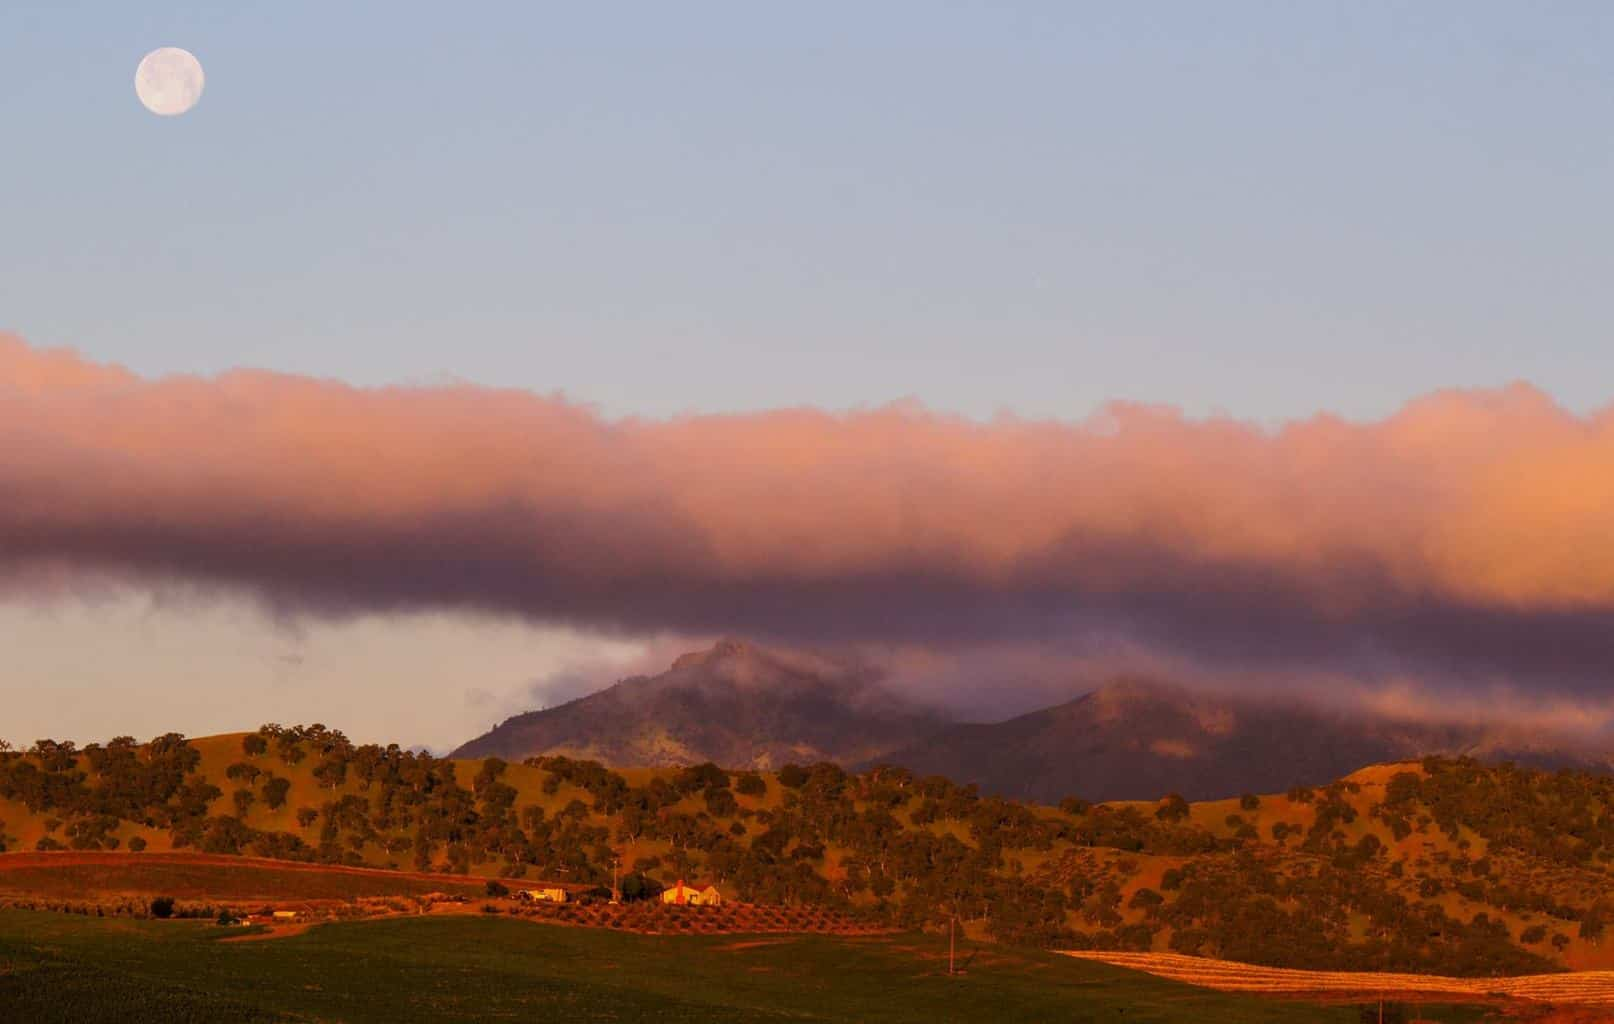 This mornings moonset with clouds hugging the top of Mt. Diablo.